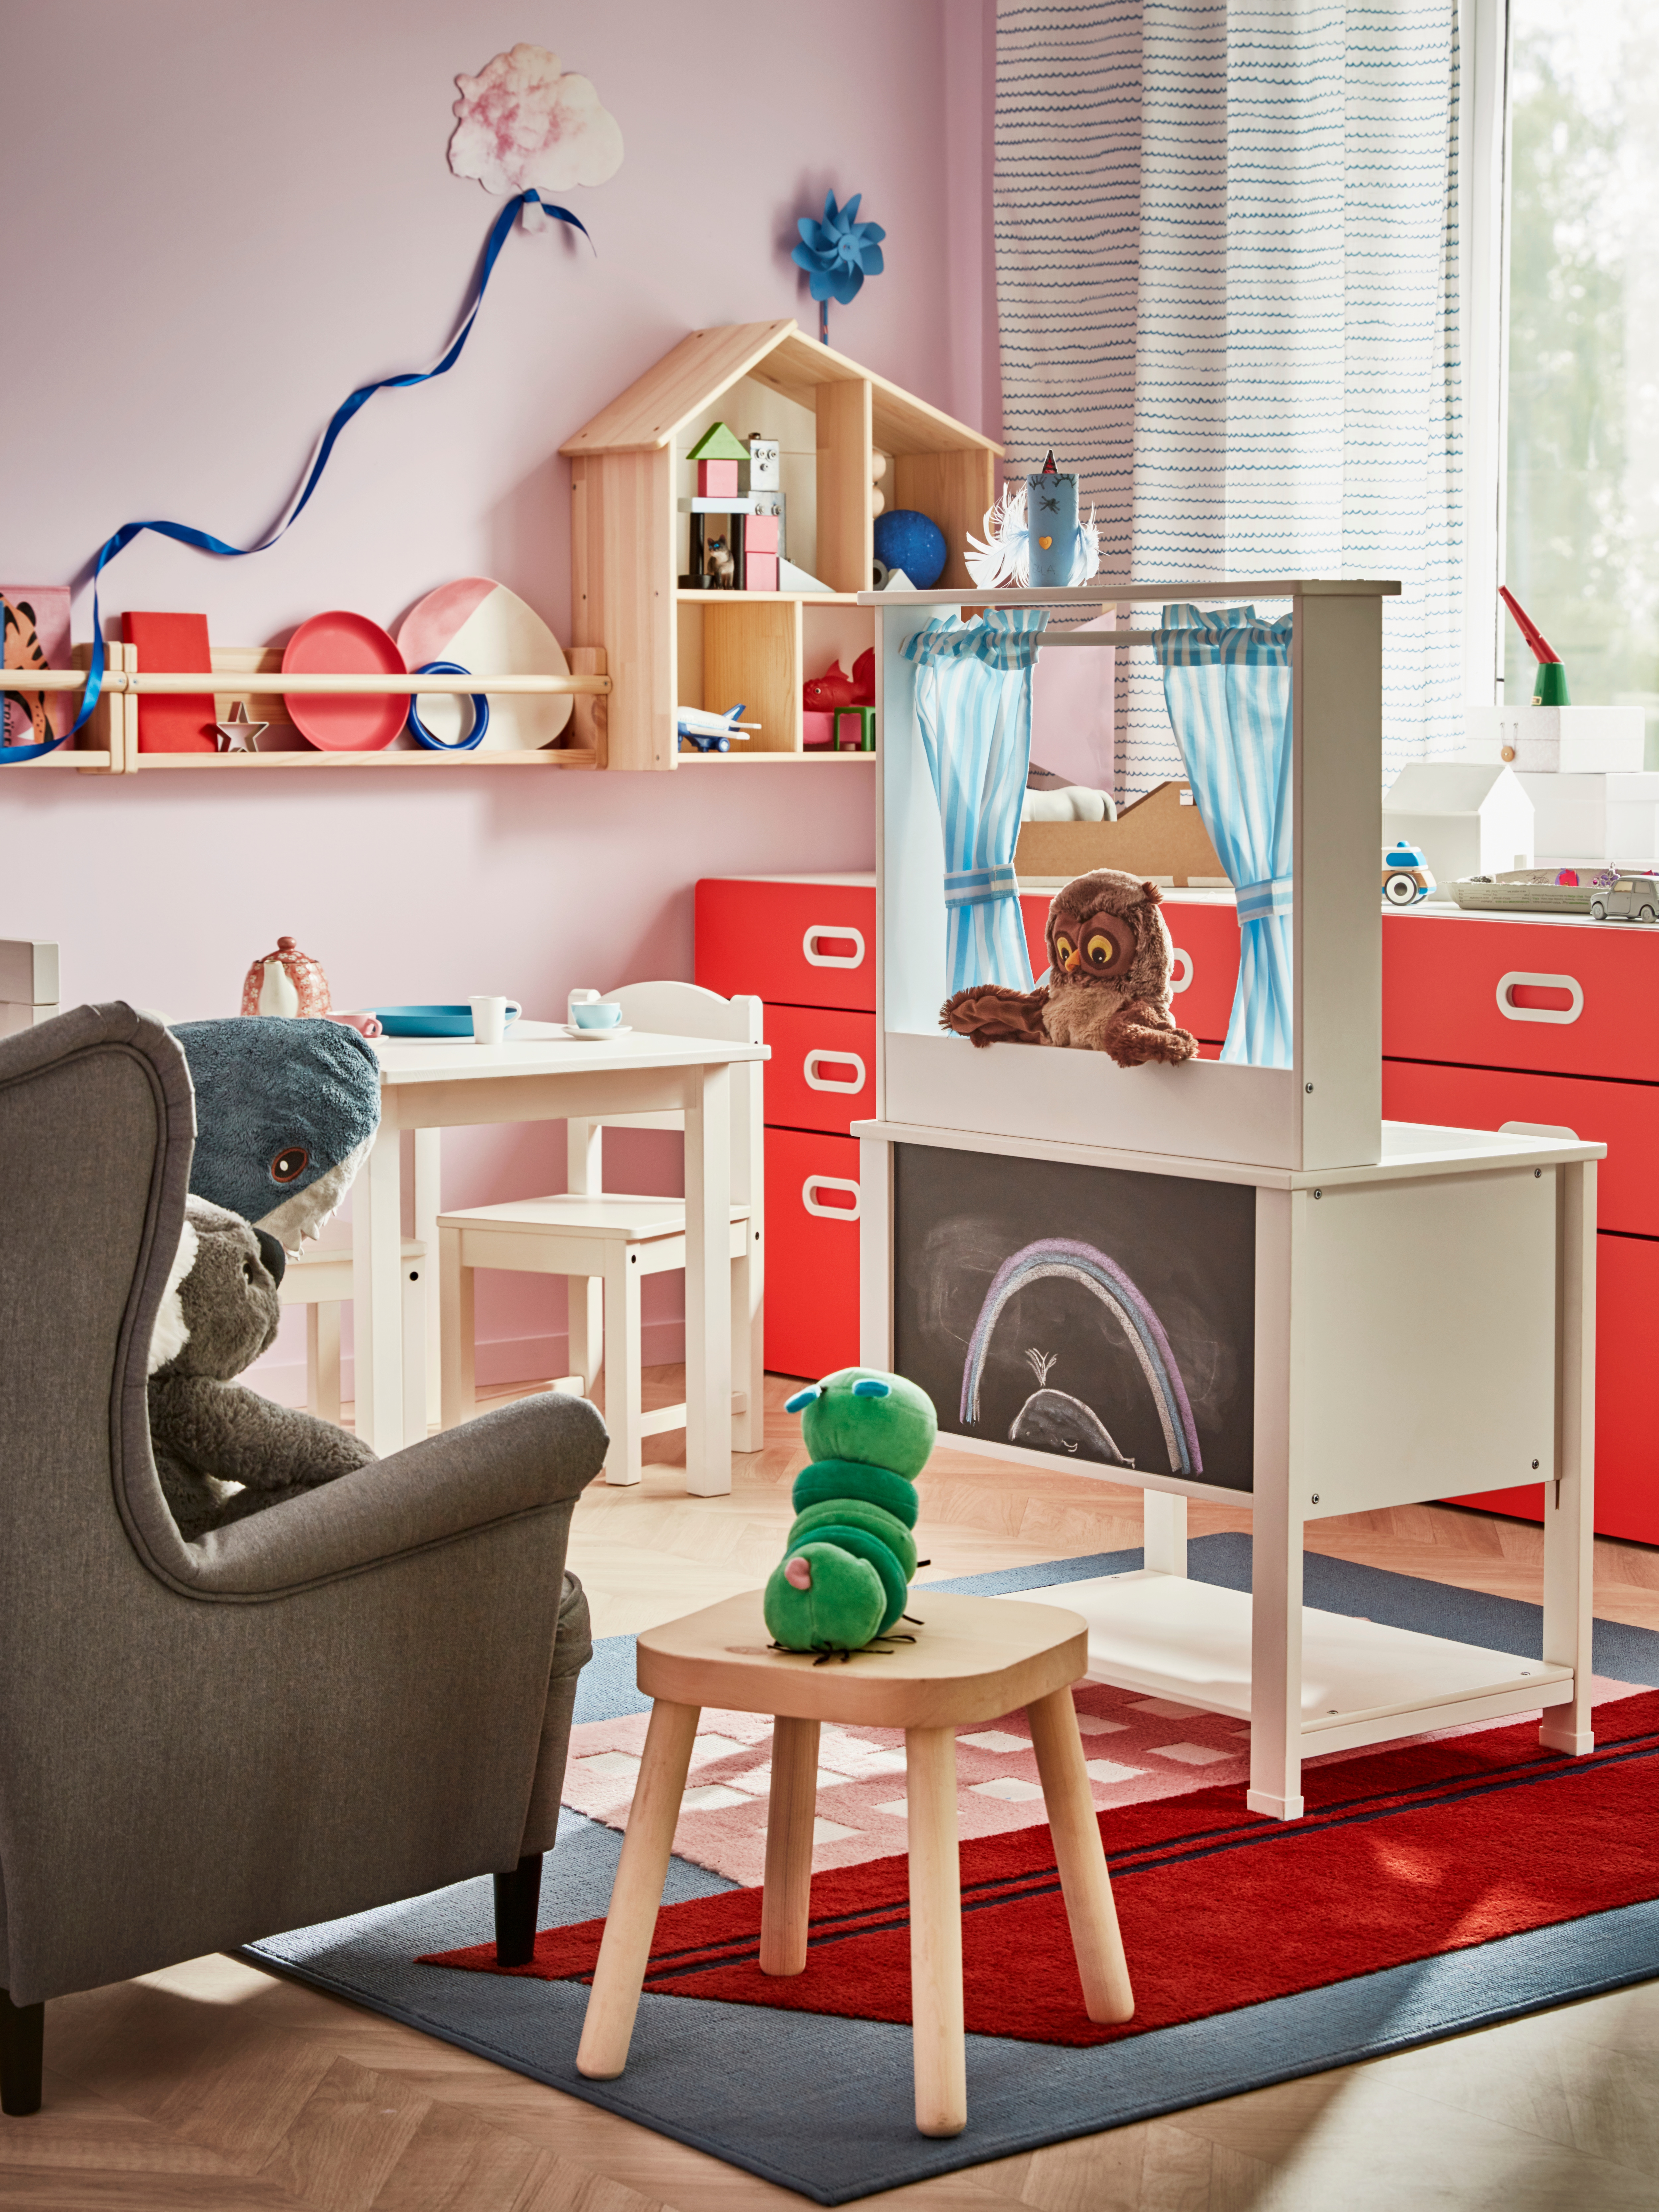 A children's room with an audience of soft toys on chairs watching an owl puppet in a SPISIG play kitchen with curtains.